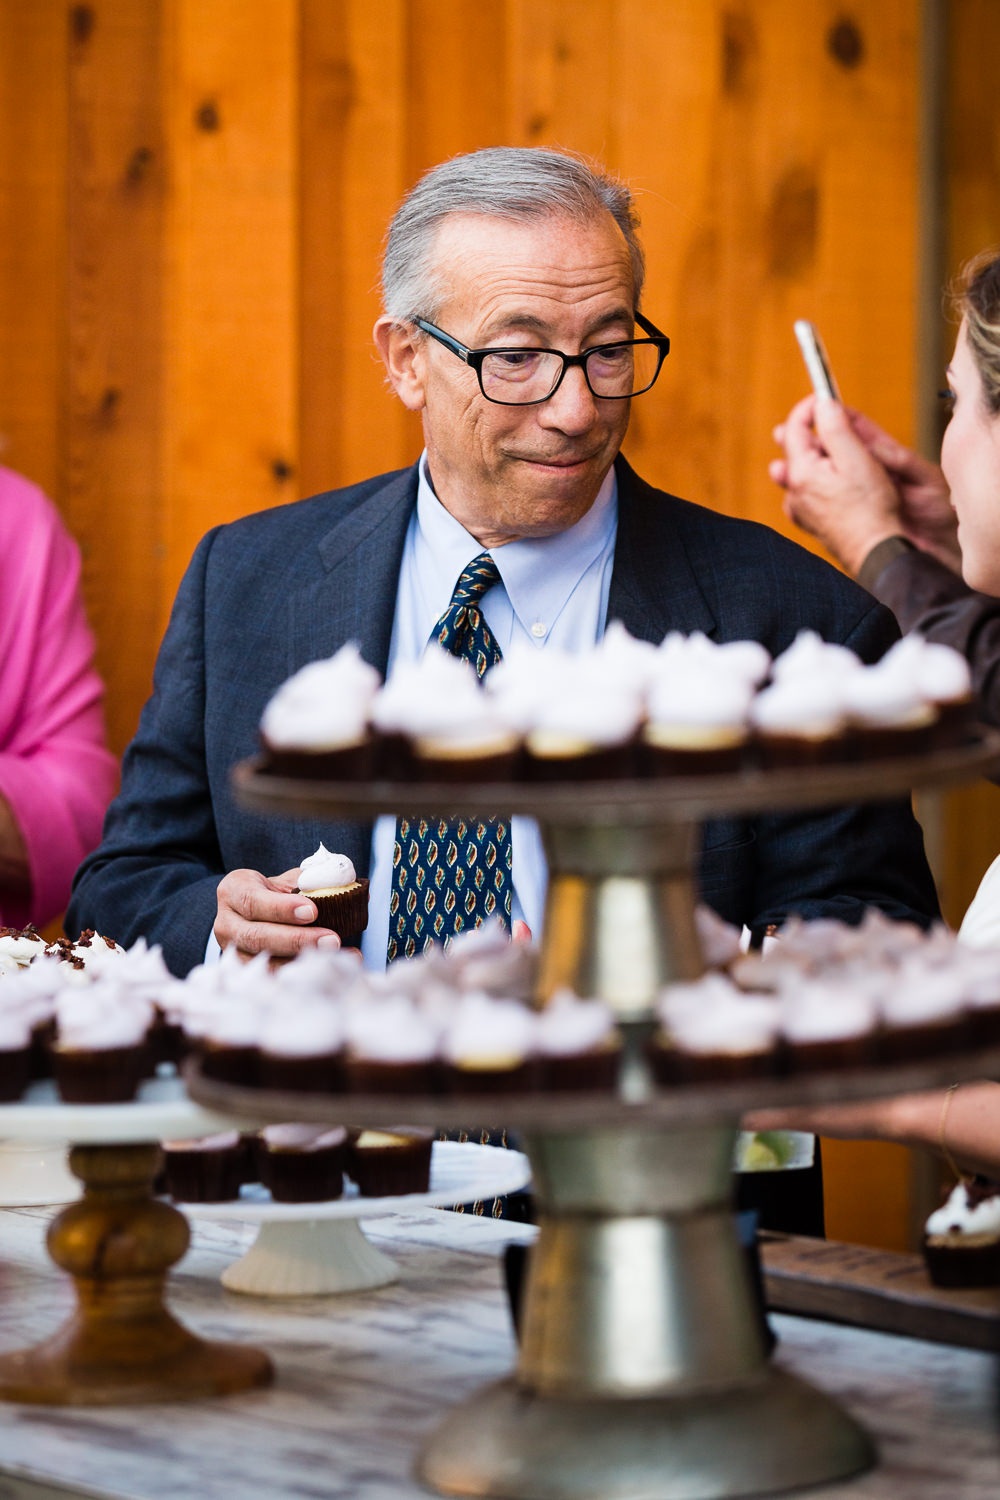 bozeman-hart-ranch-wedding-man-at-cupcake-table.jpg